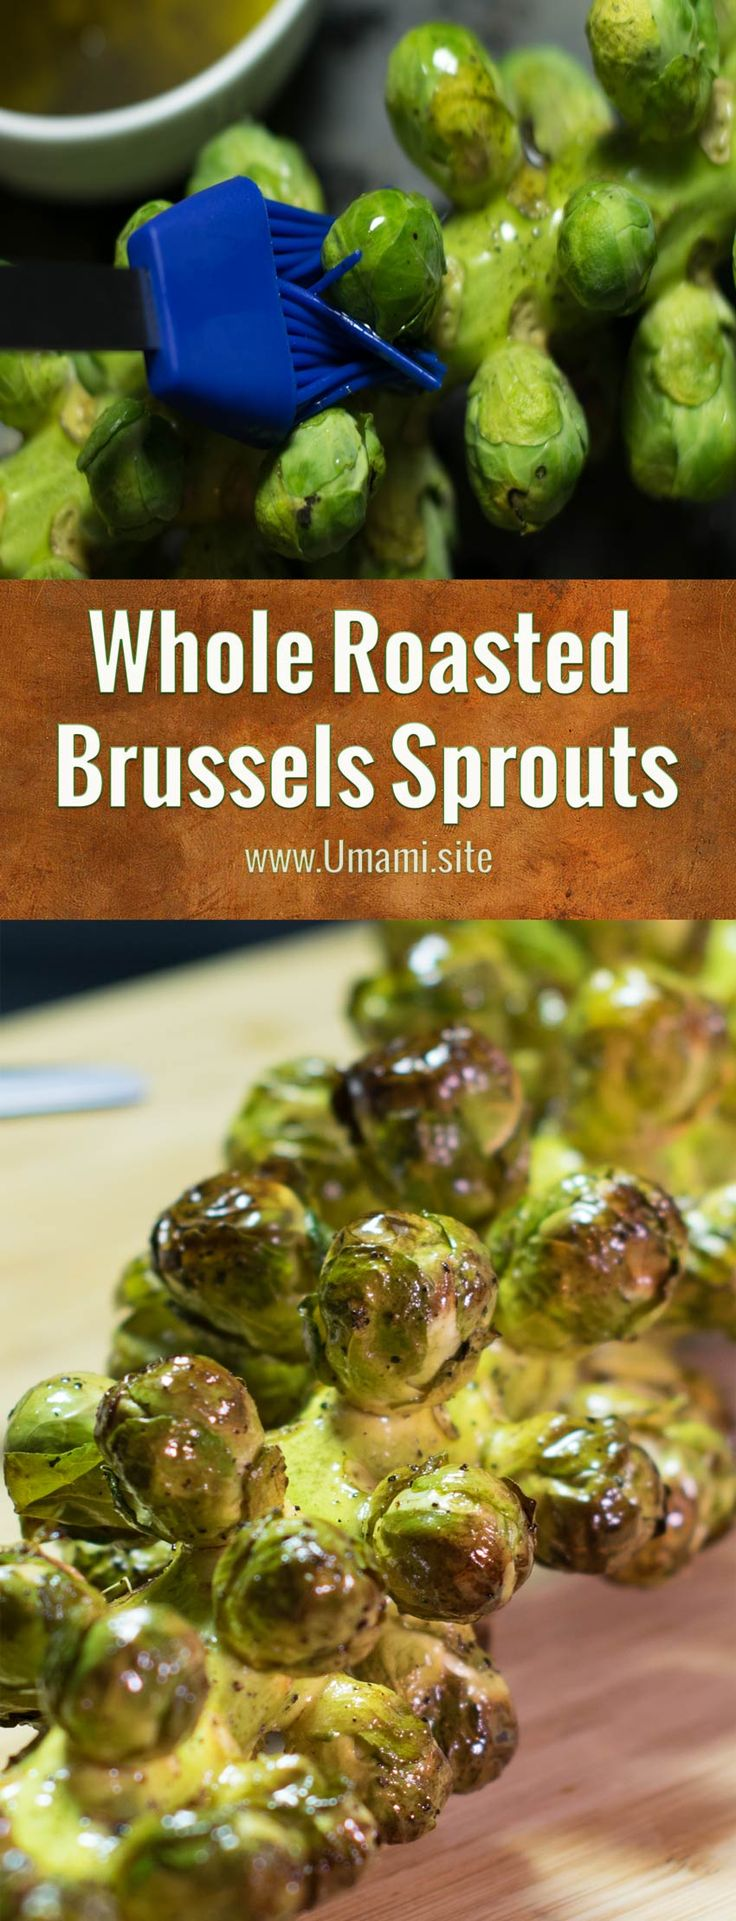 A simple way to create an eye-popping presentation is to serve roasted Brussels sprouts still on the stalk. The secret to this roasted Brussel sprouts recipe is how olive oil, lemon juice, and honey add flavor as the sprouts roast.